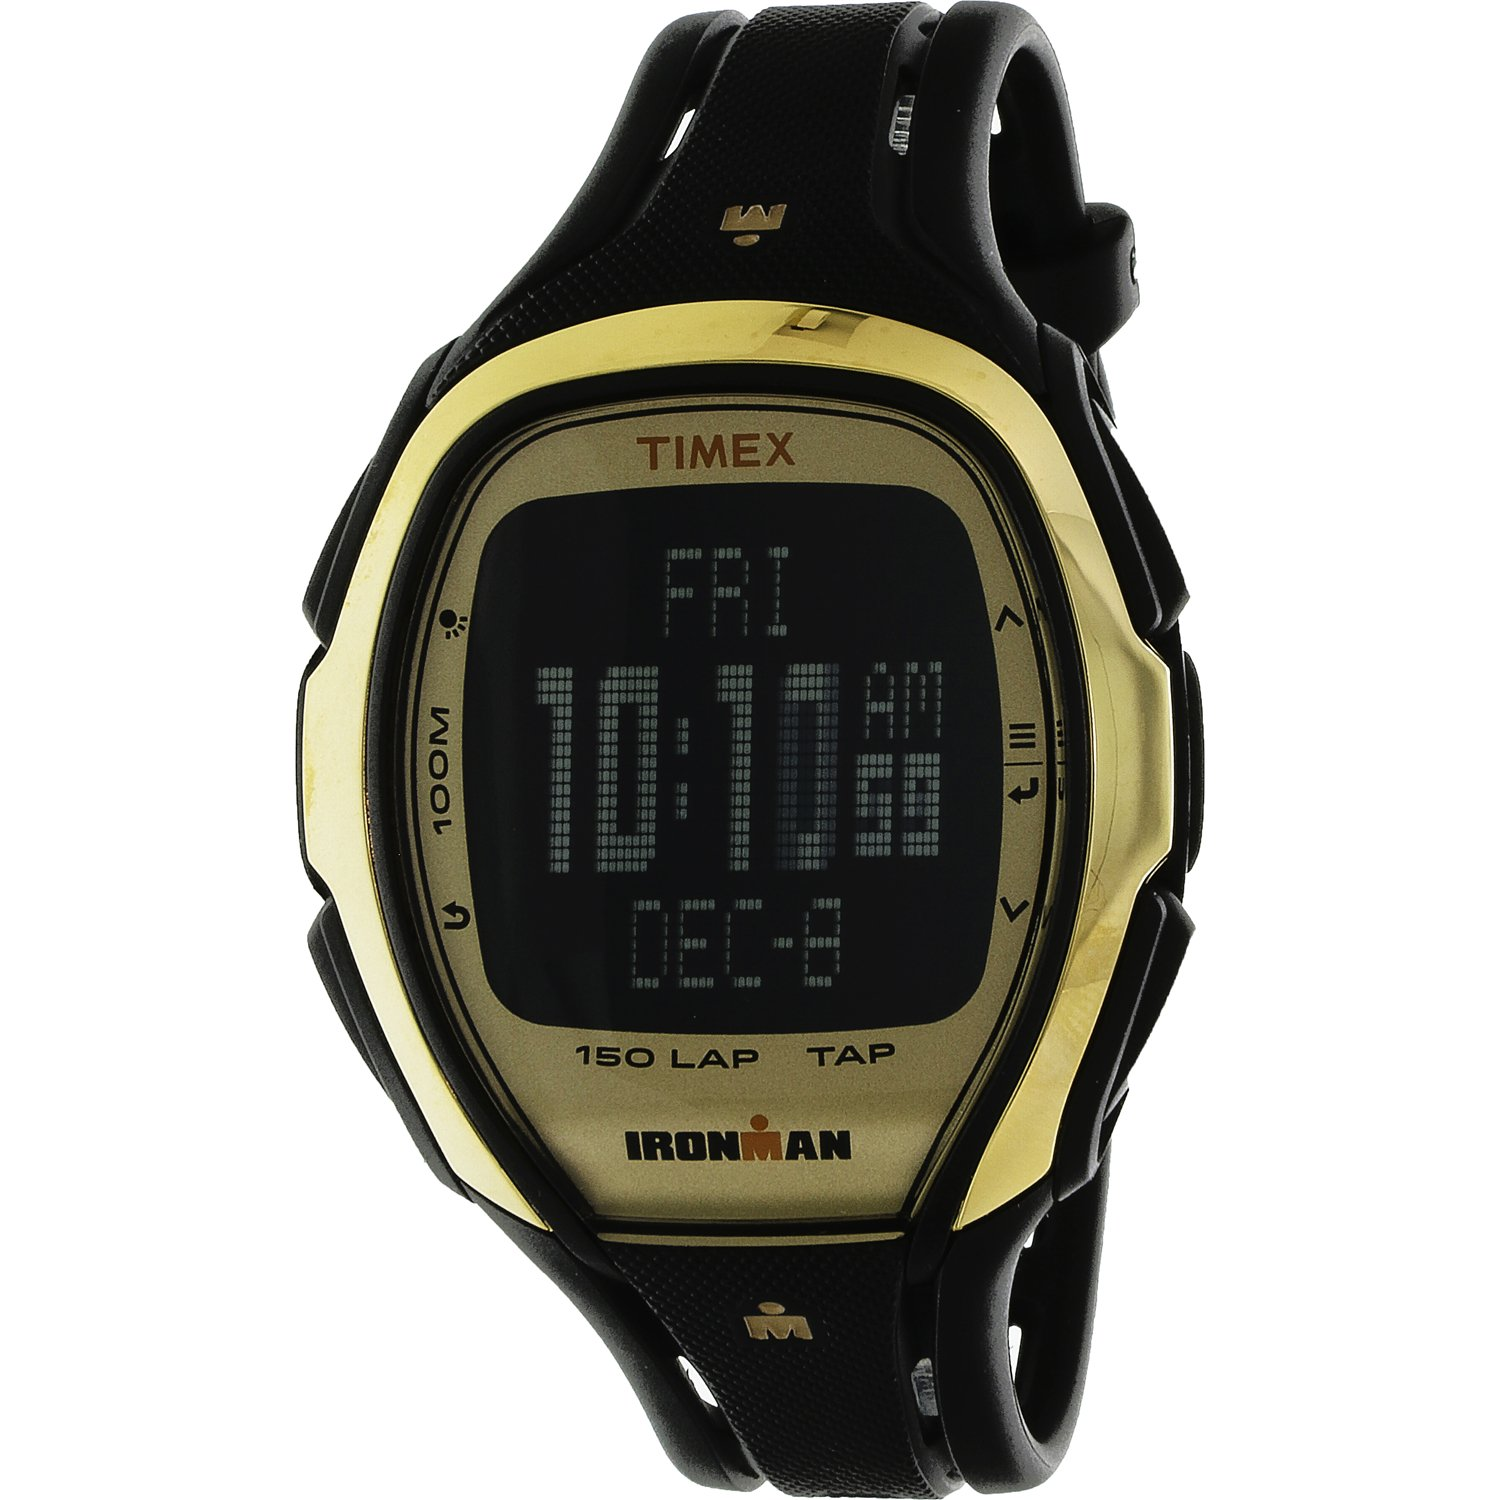 Timex Ironman Sleek TW5M05900 Gold Resin Quartz Diving Watch